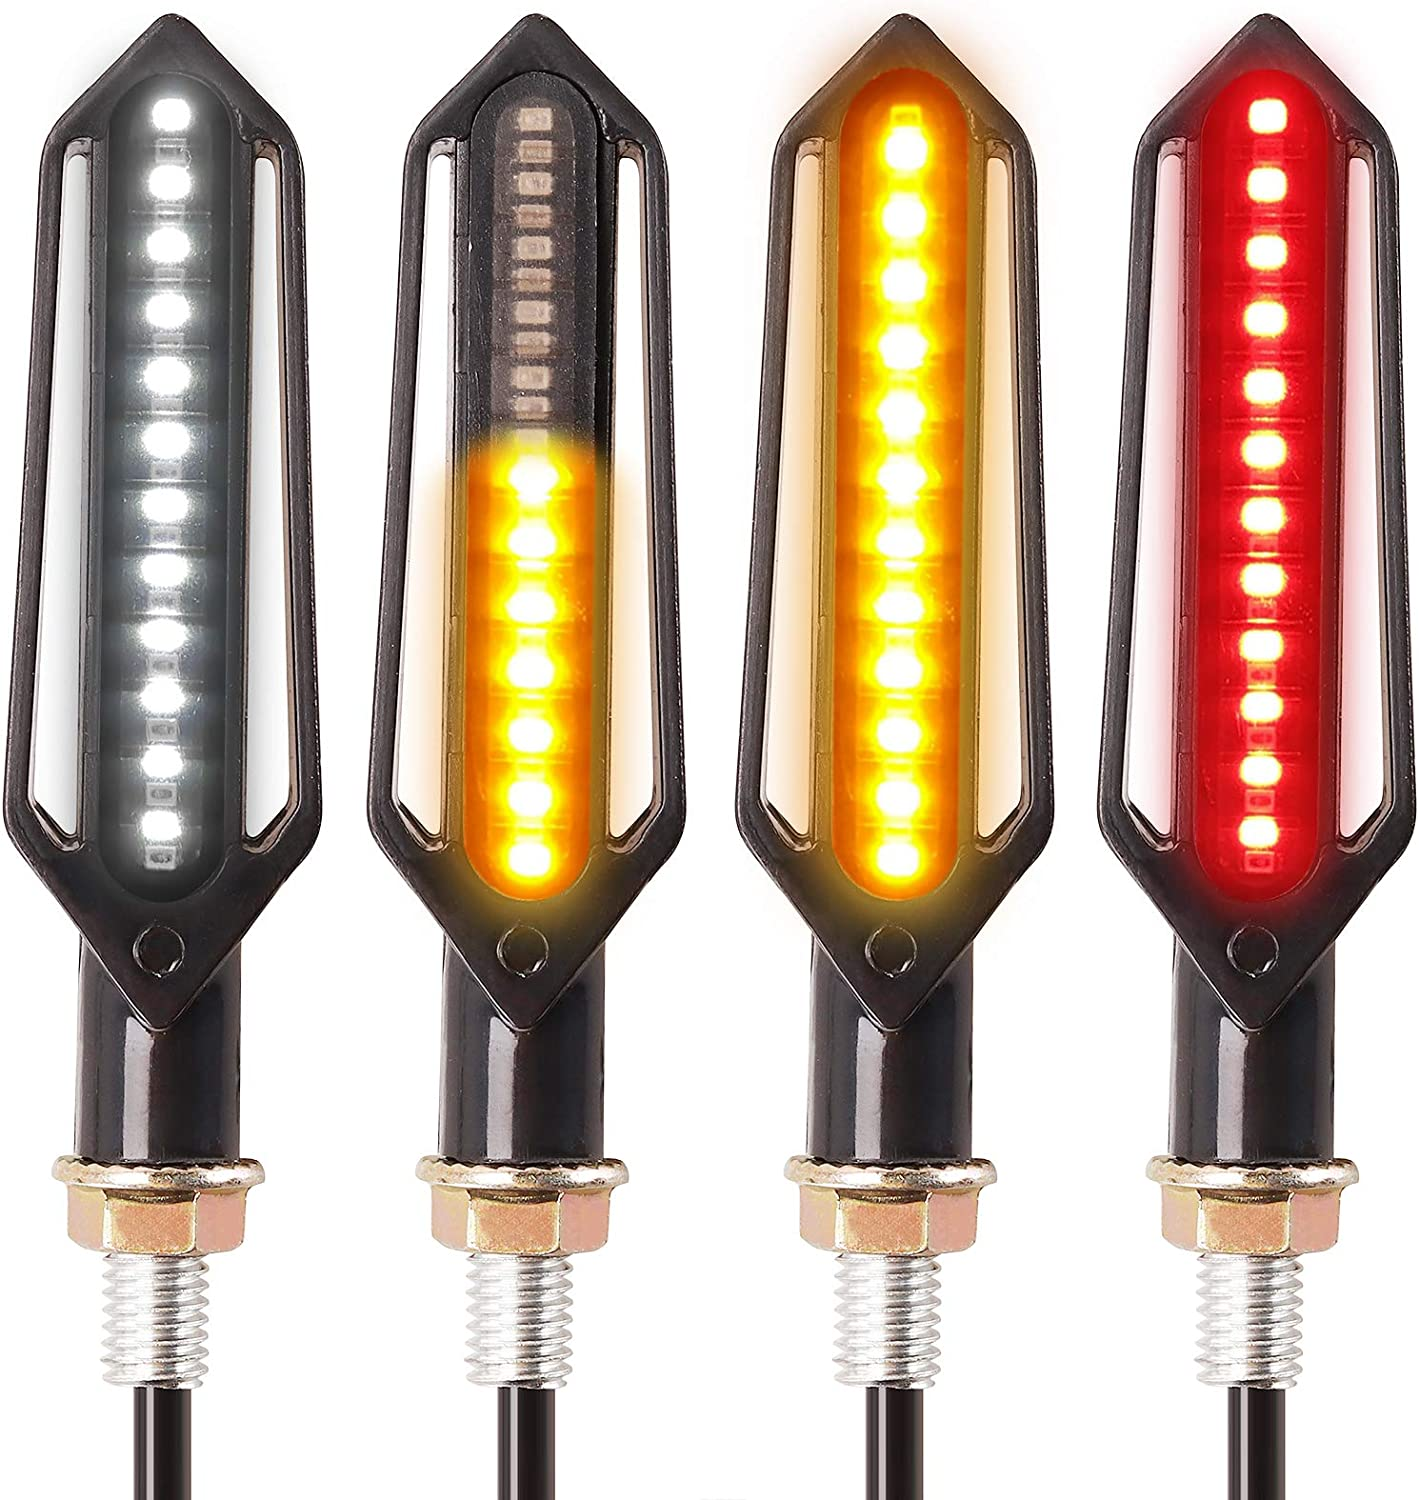 Kinstecks 4PCS Gorgeous Motorcycle Indicators New Orleans Mall Lights Signal Flowing Turn